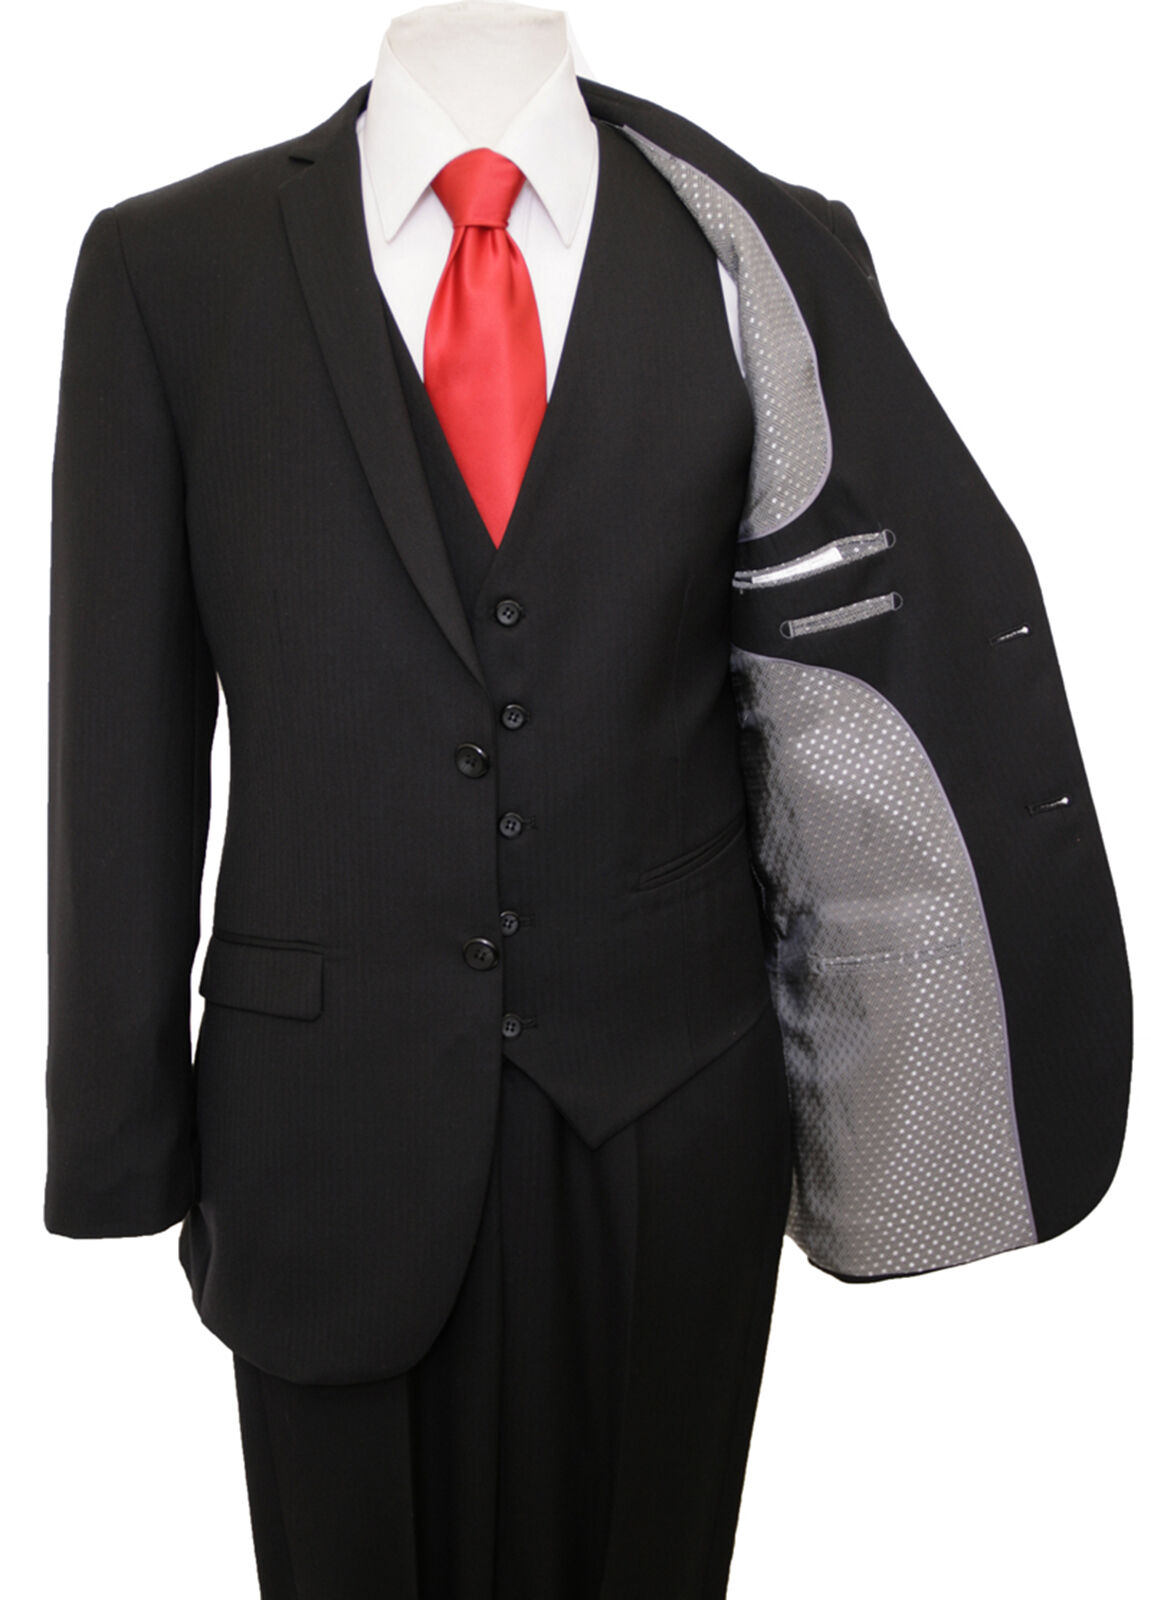 MODERN ULTRA SLIM FIT herren TONE ON TONE SUIT FORMAL PROM DANCE GROOMSMEN OFFICE